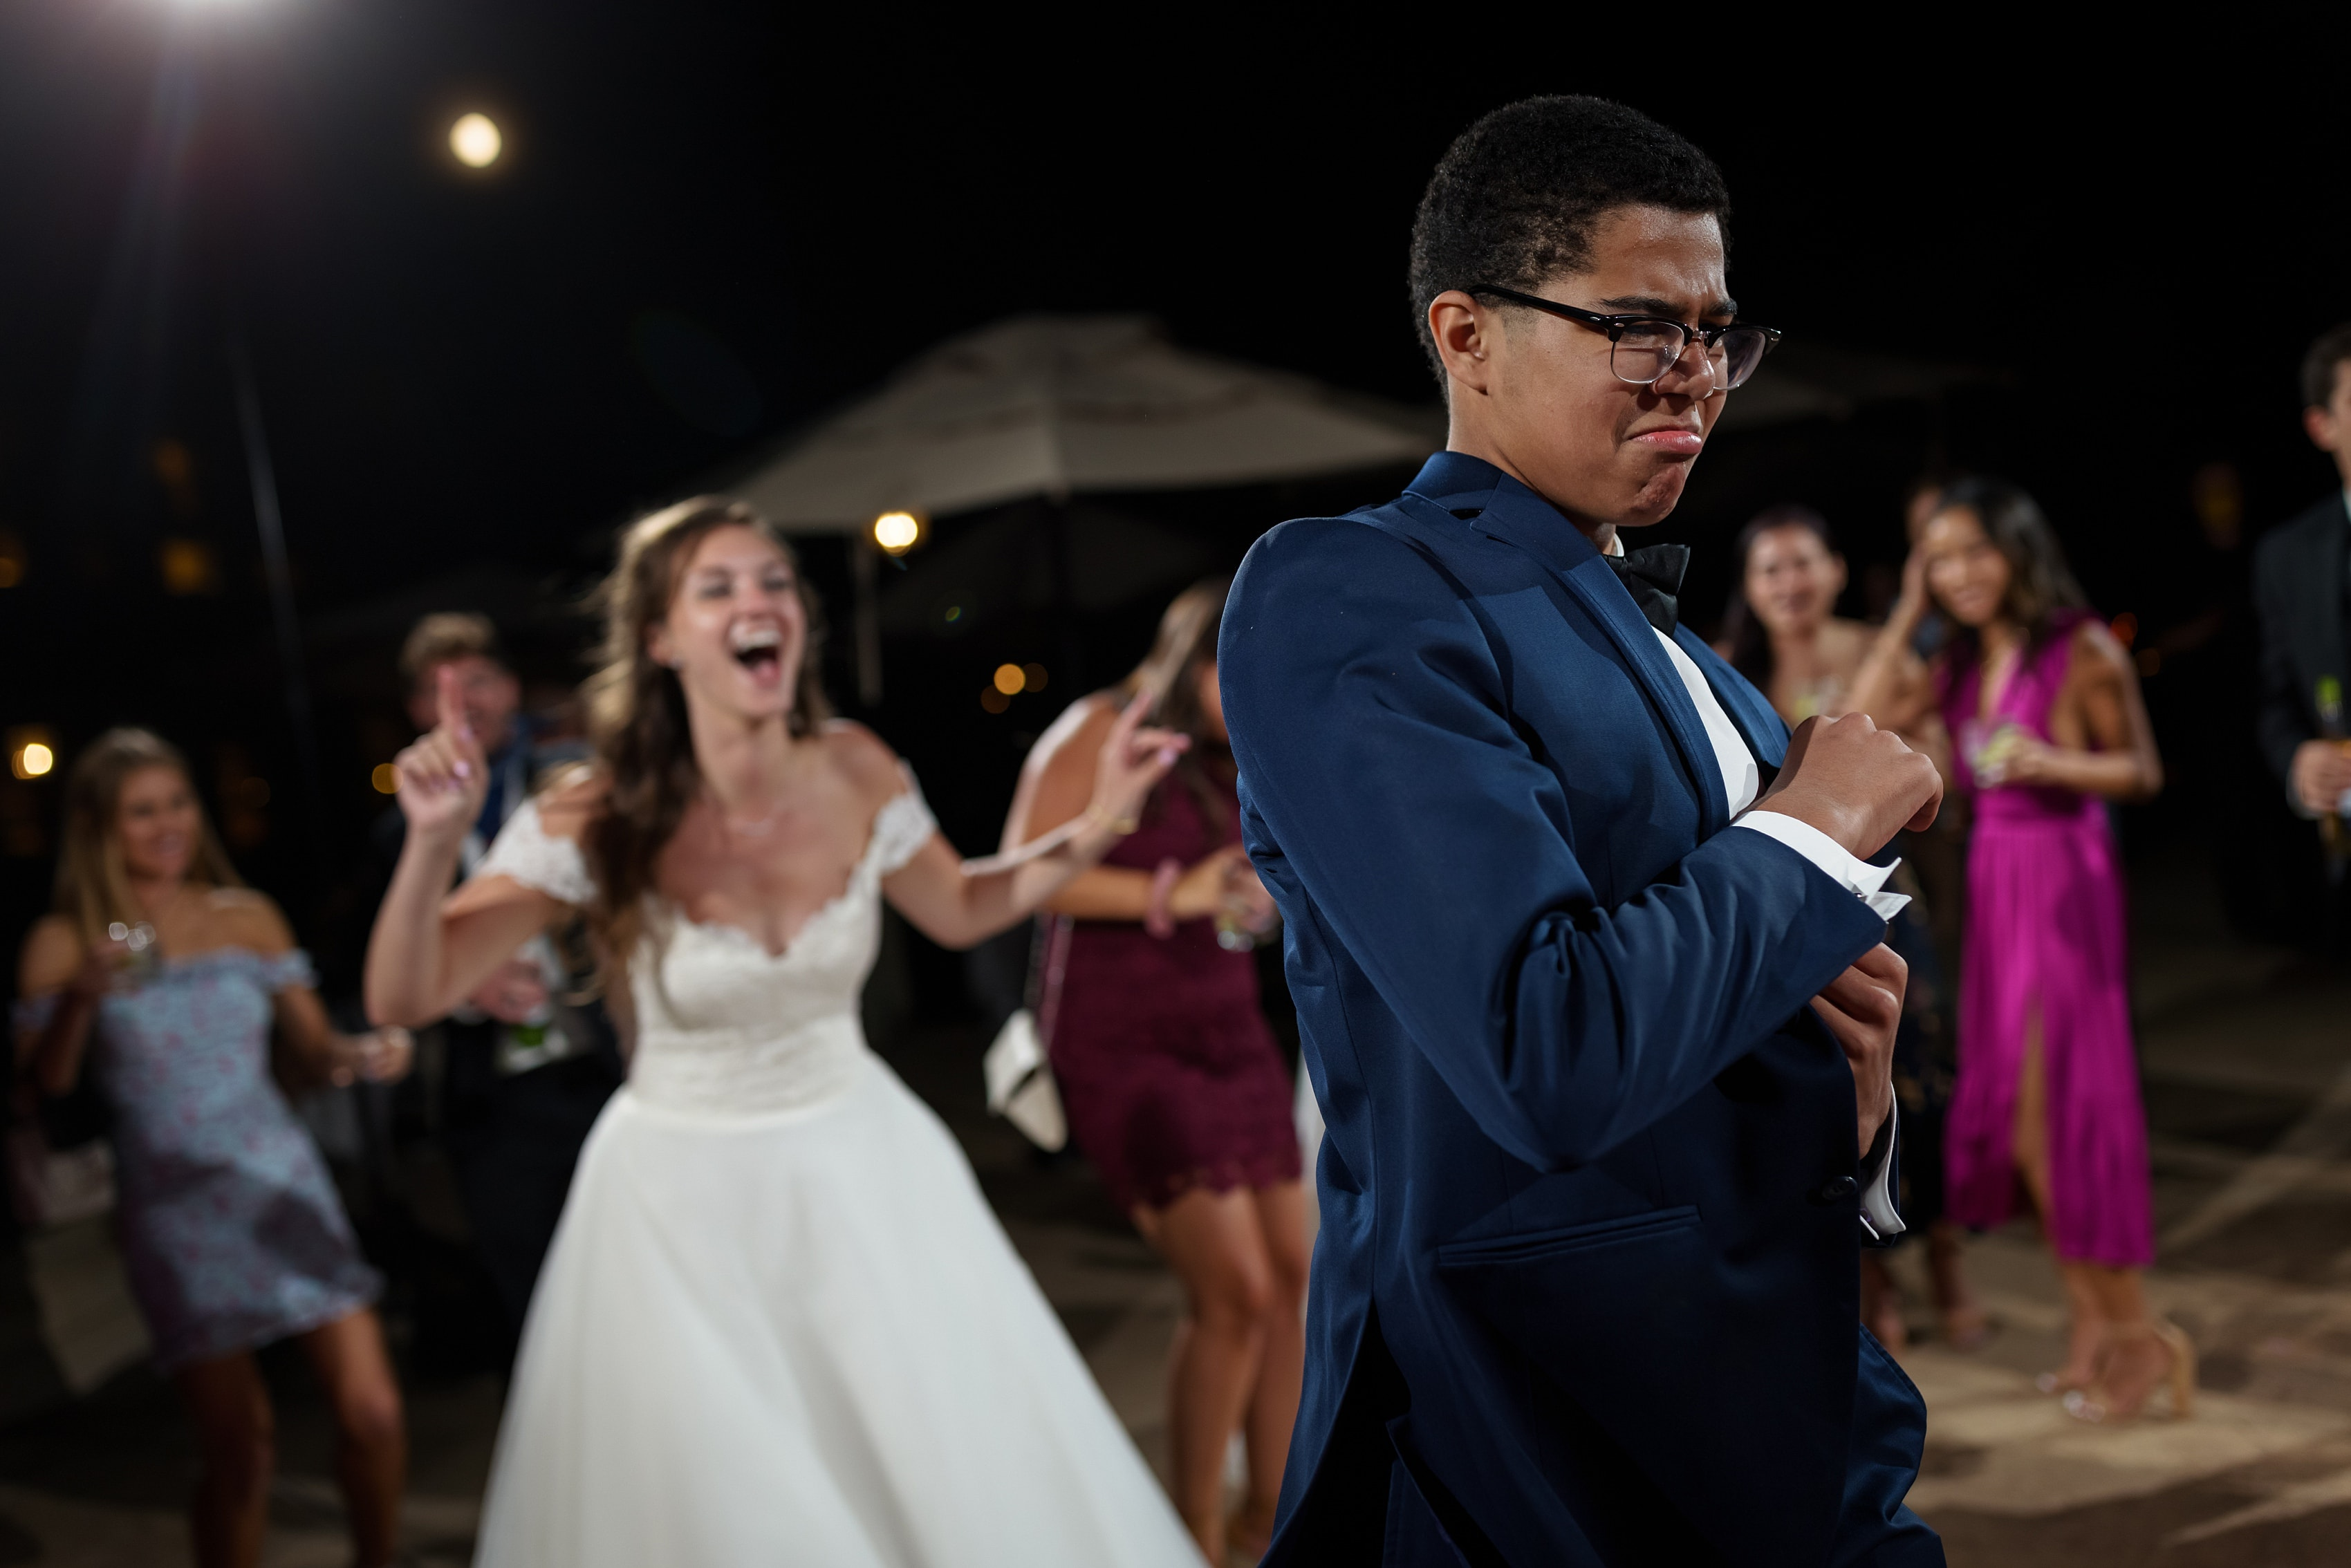 wedding guests dance during reception at The Broadmoor Hotel